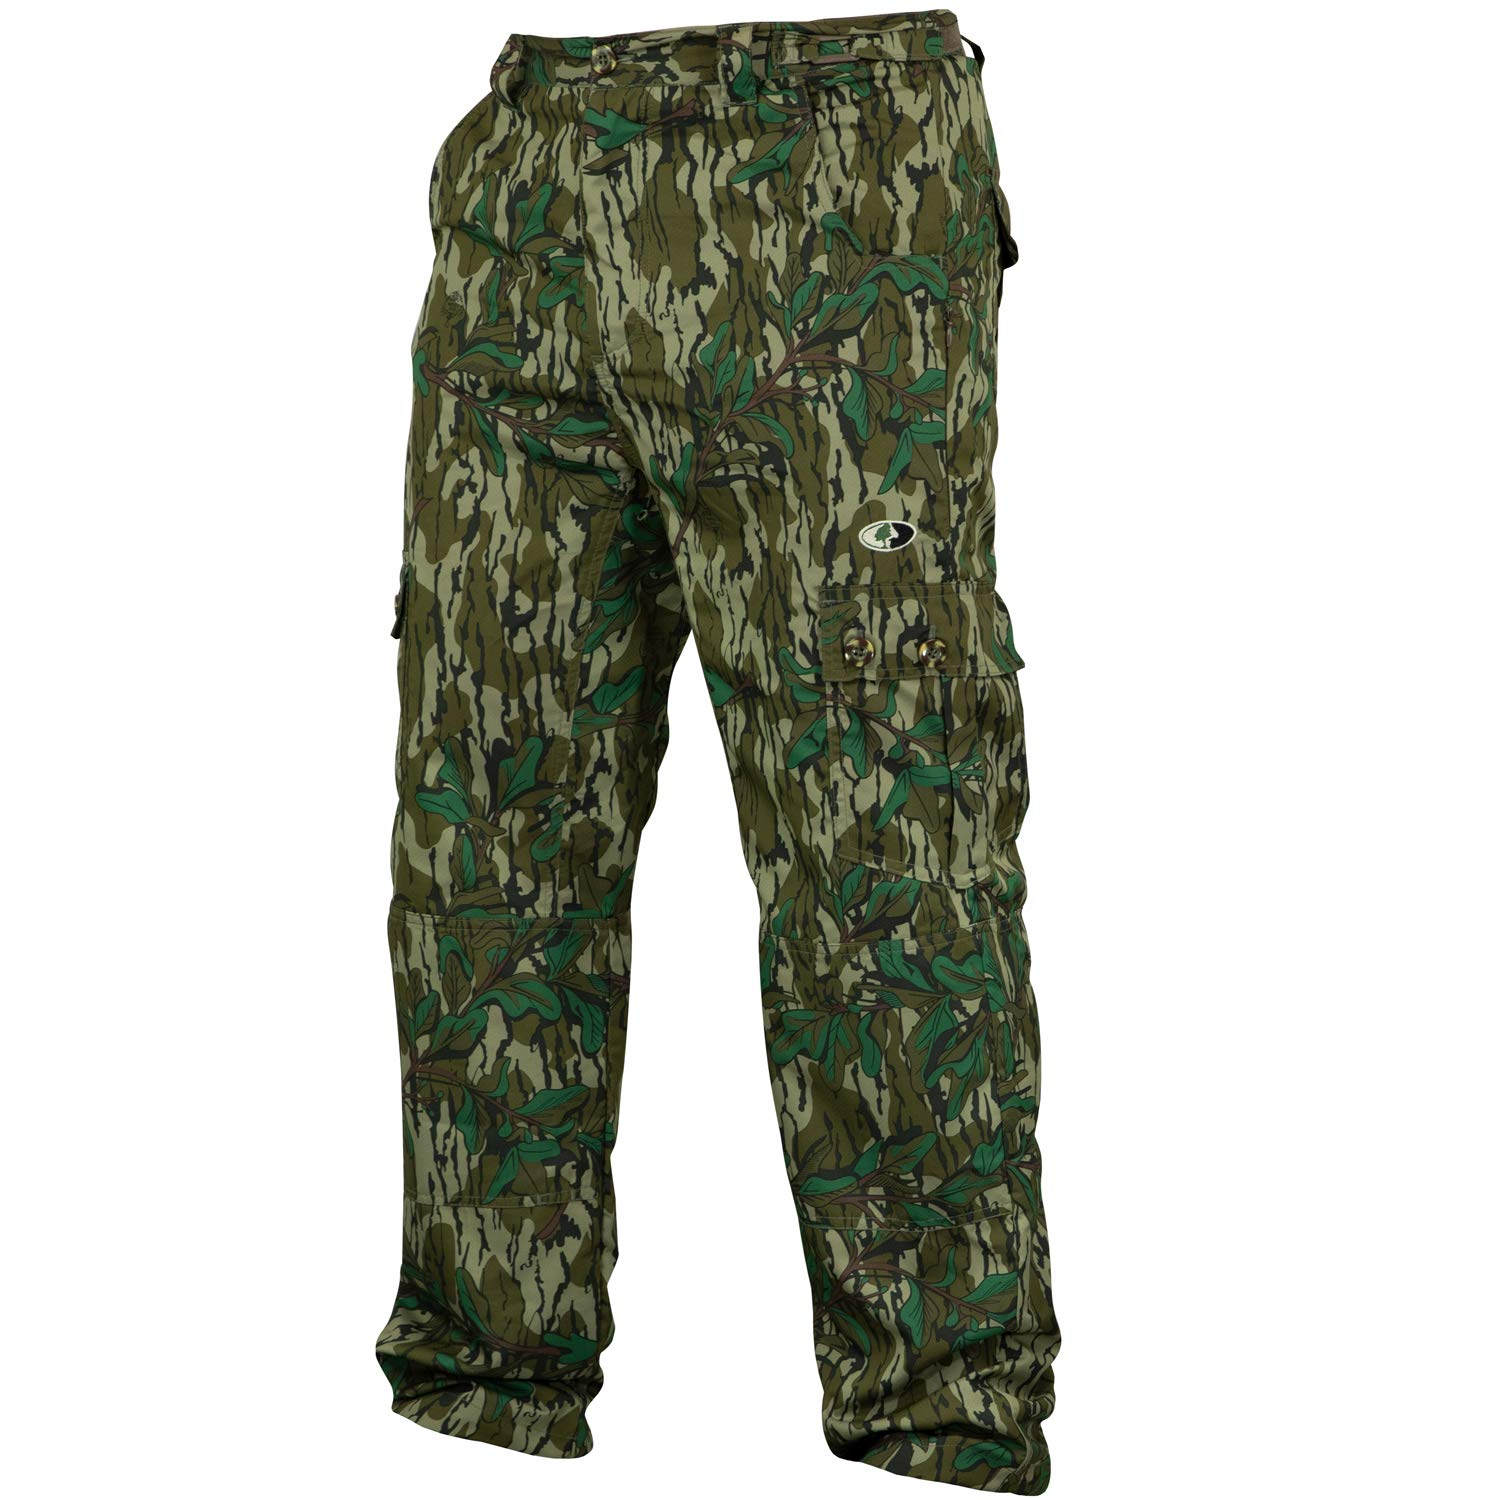 Mossy Oak Men's Tibbee Technical Lightweight Camo Hunting Pants, Greenleaf, 3X-Large